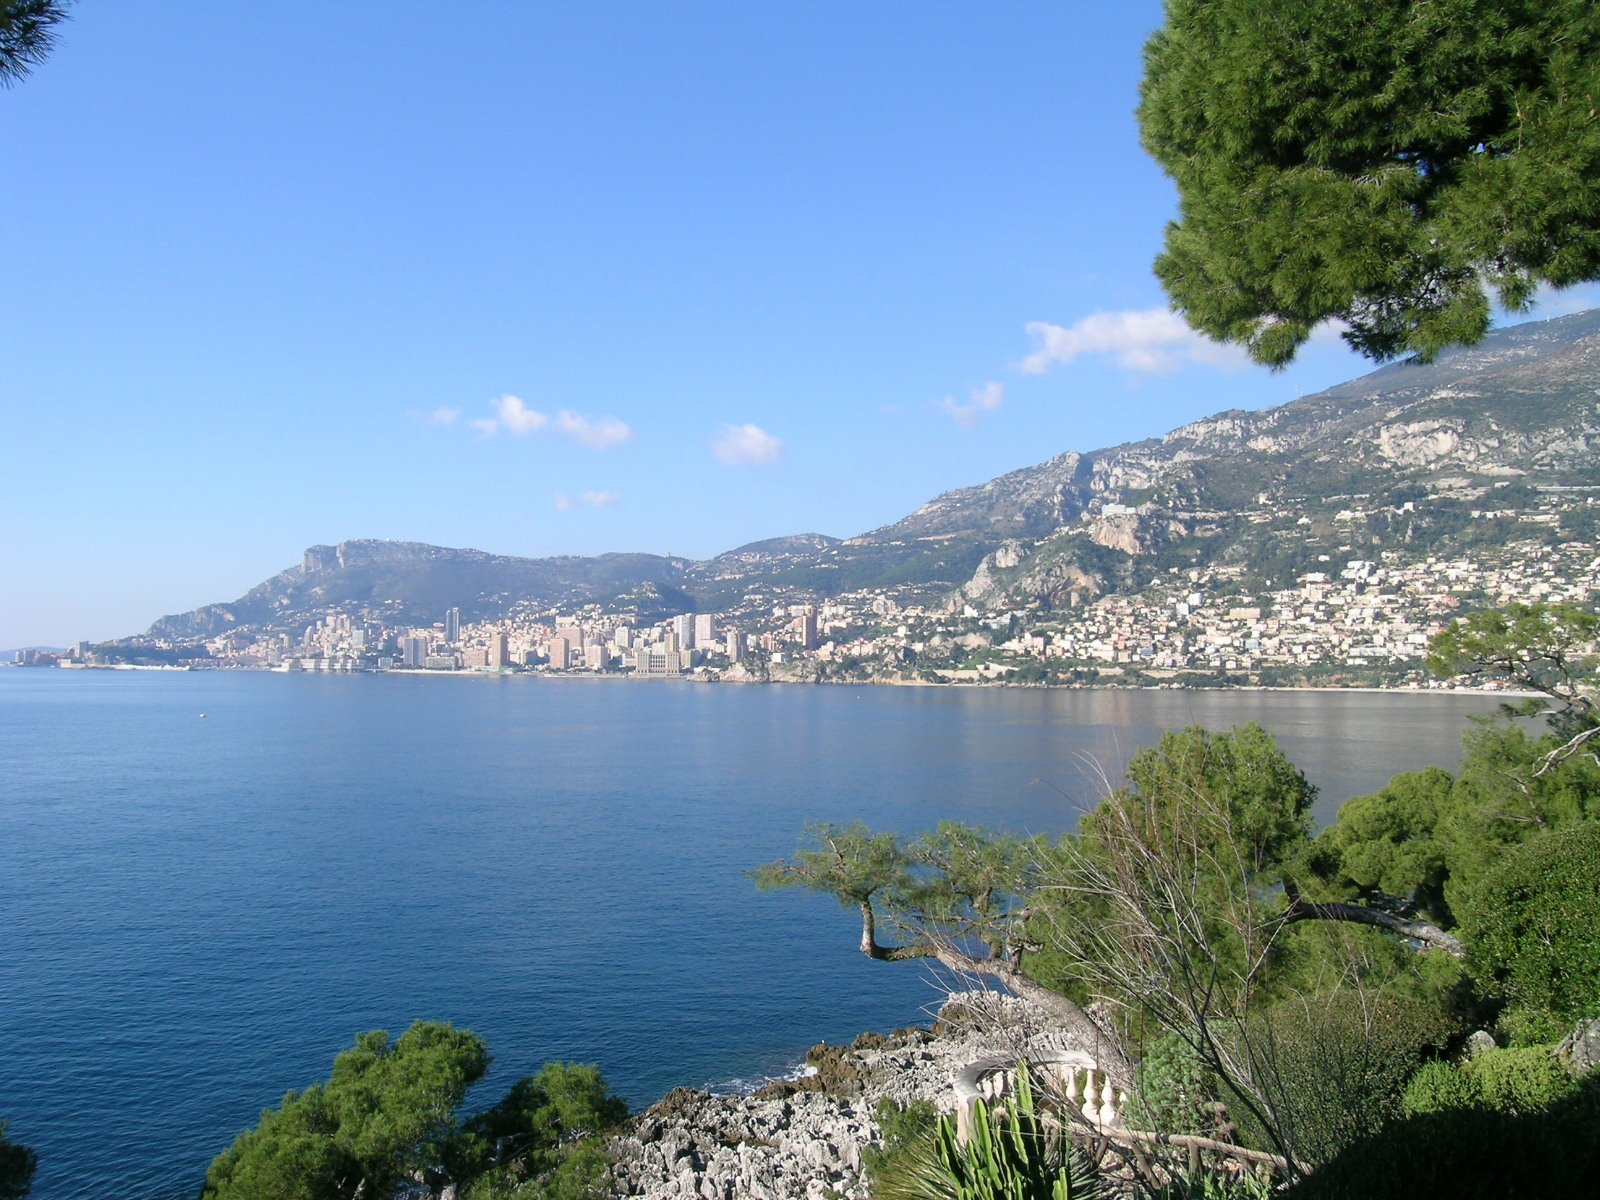 Views over Monaco taken from Cap Martin property